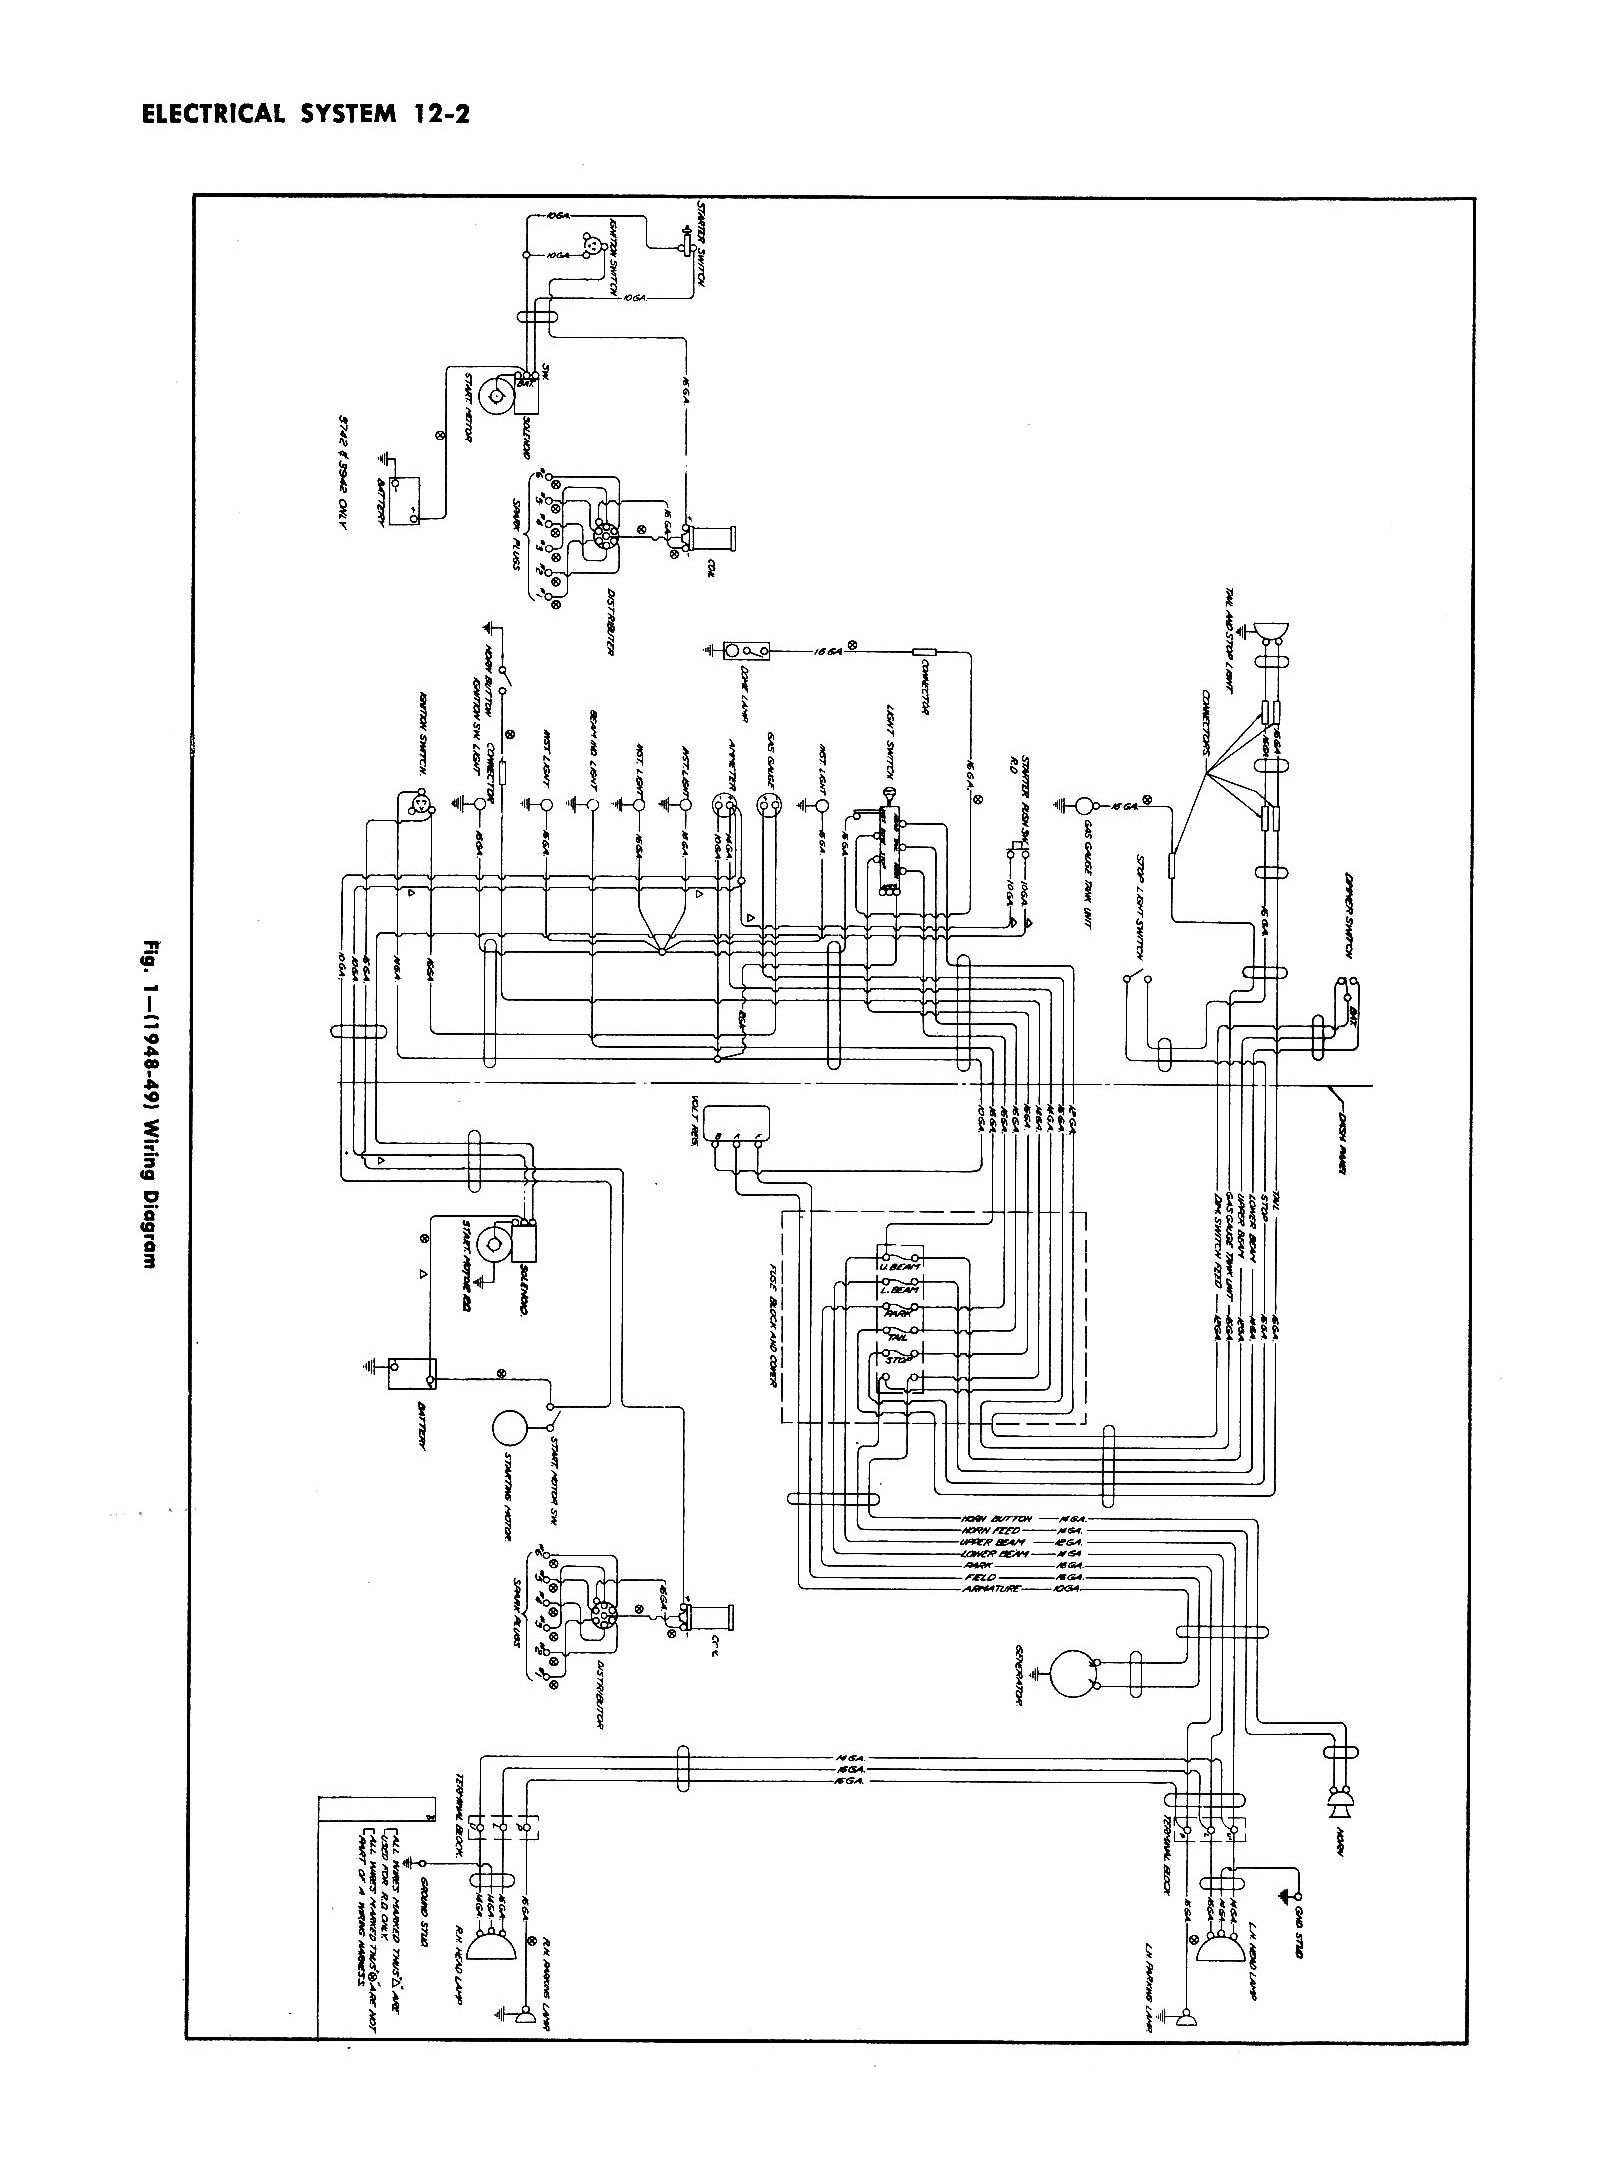 Chevy Wiring Diagrams - Chevy Headlight Switch Wiring Diagram